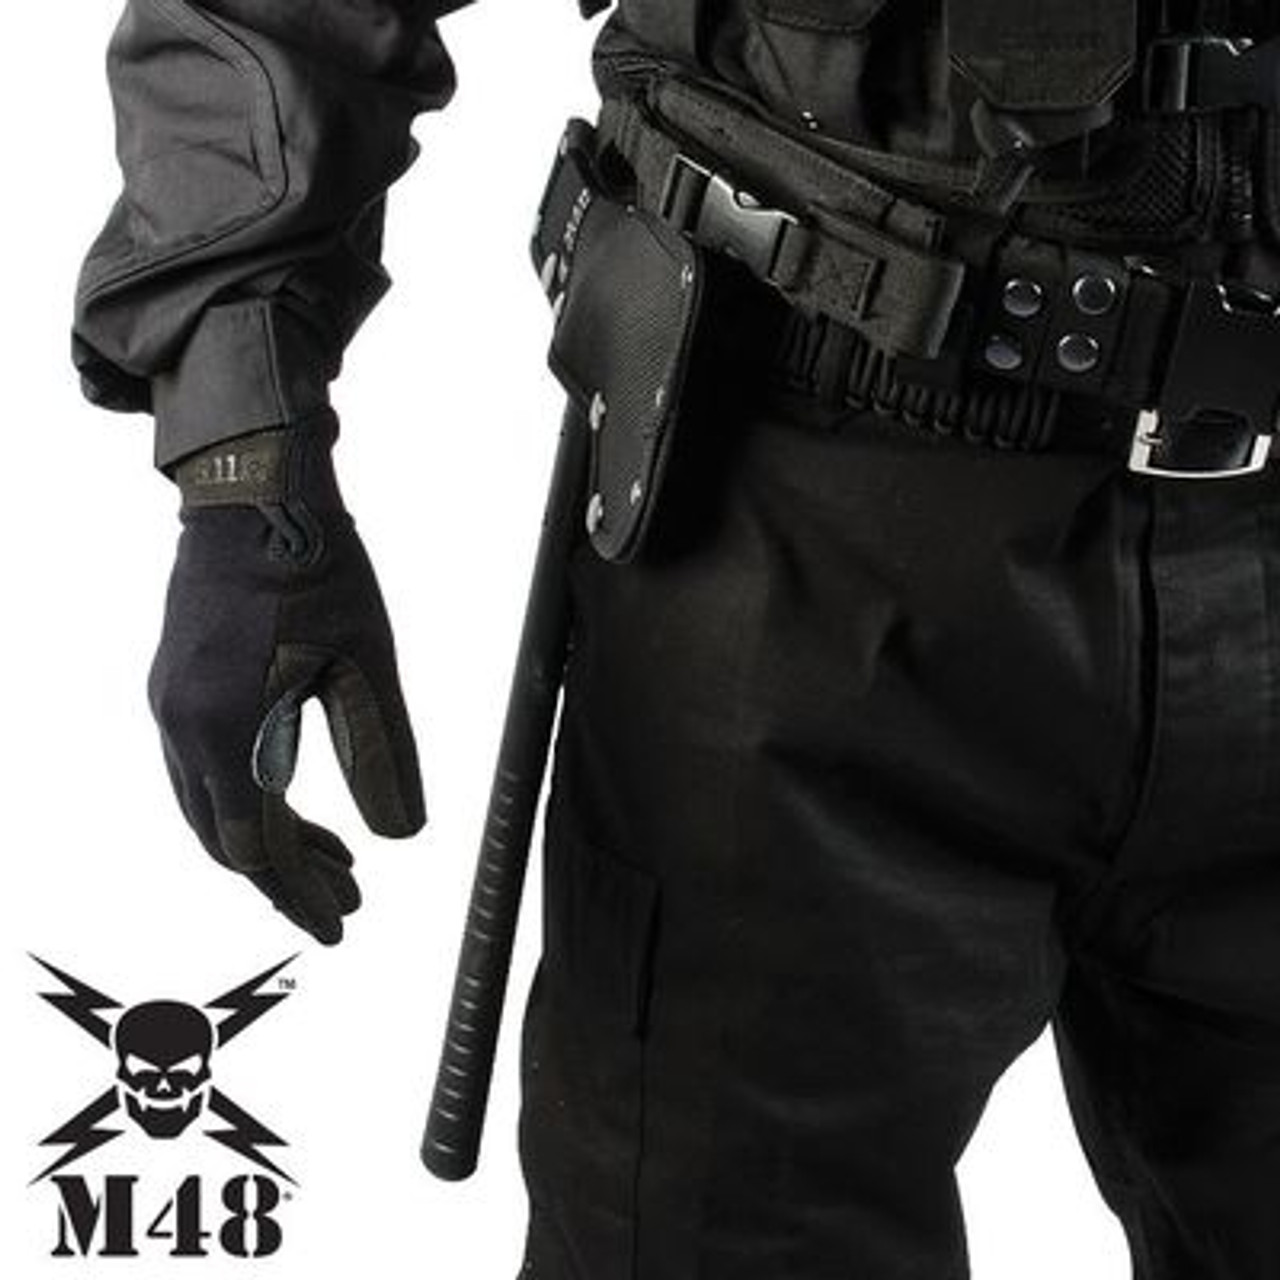 M48 Tactical Tomahawk Axe with Snap On M48 Sheath - UC2765